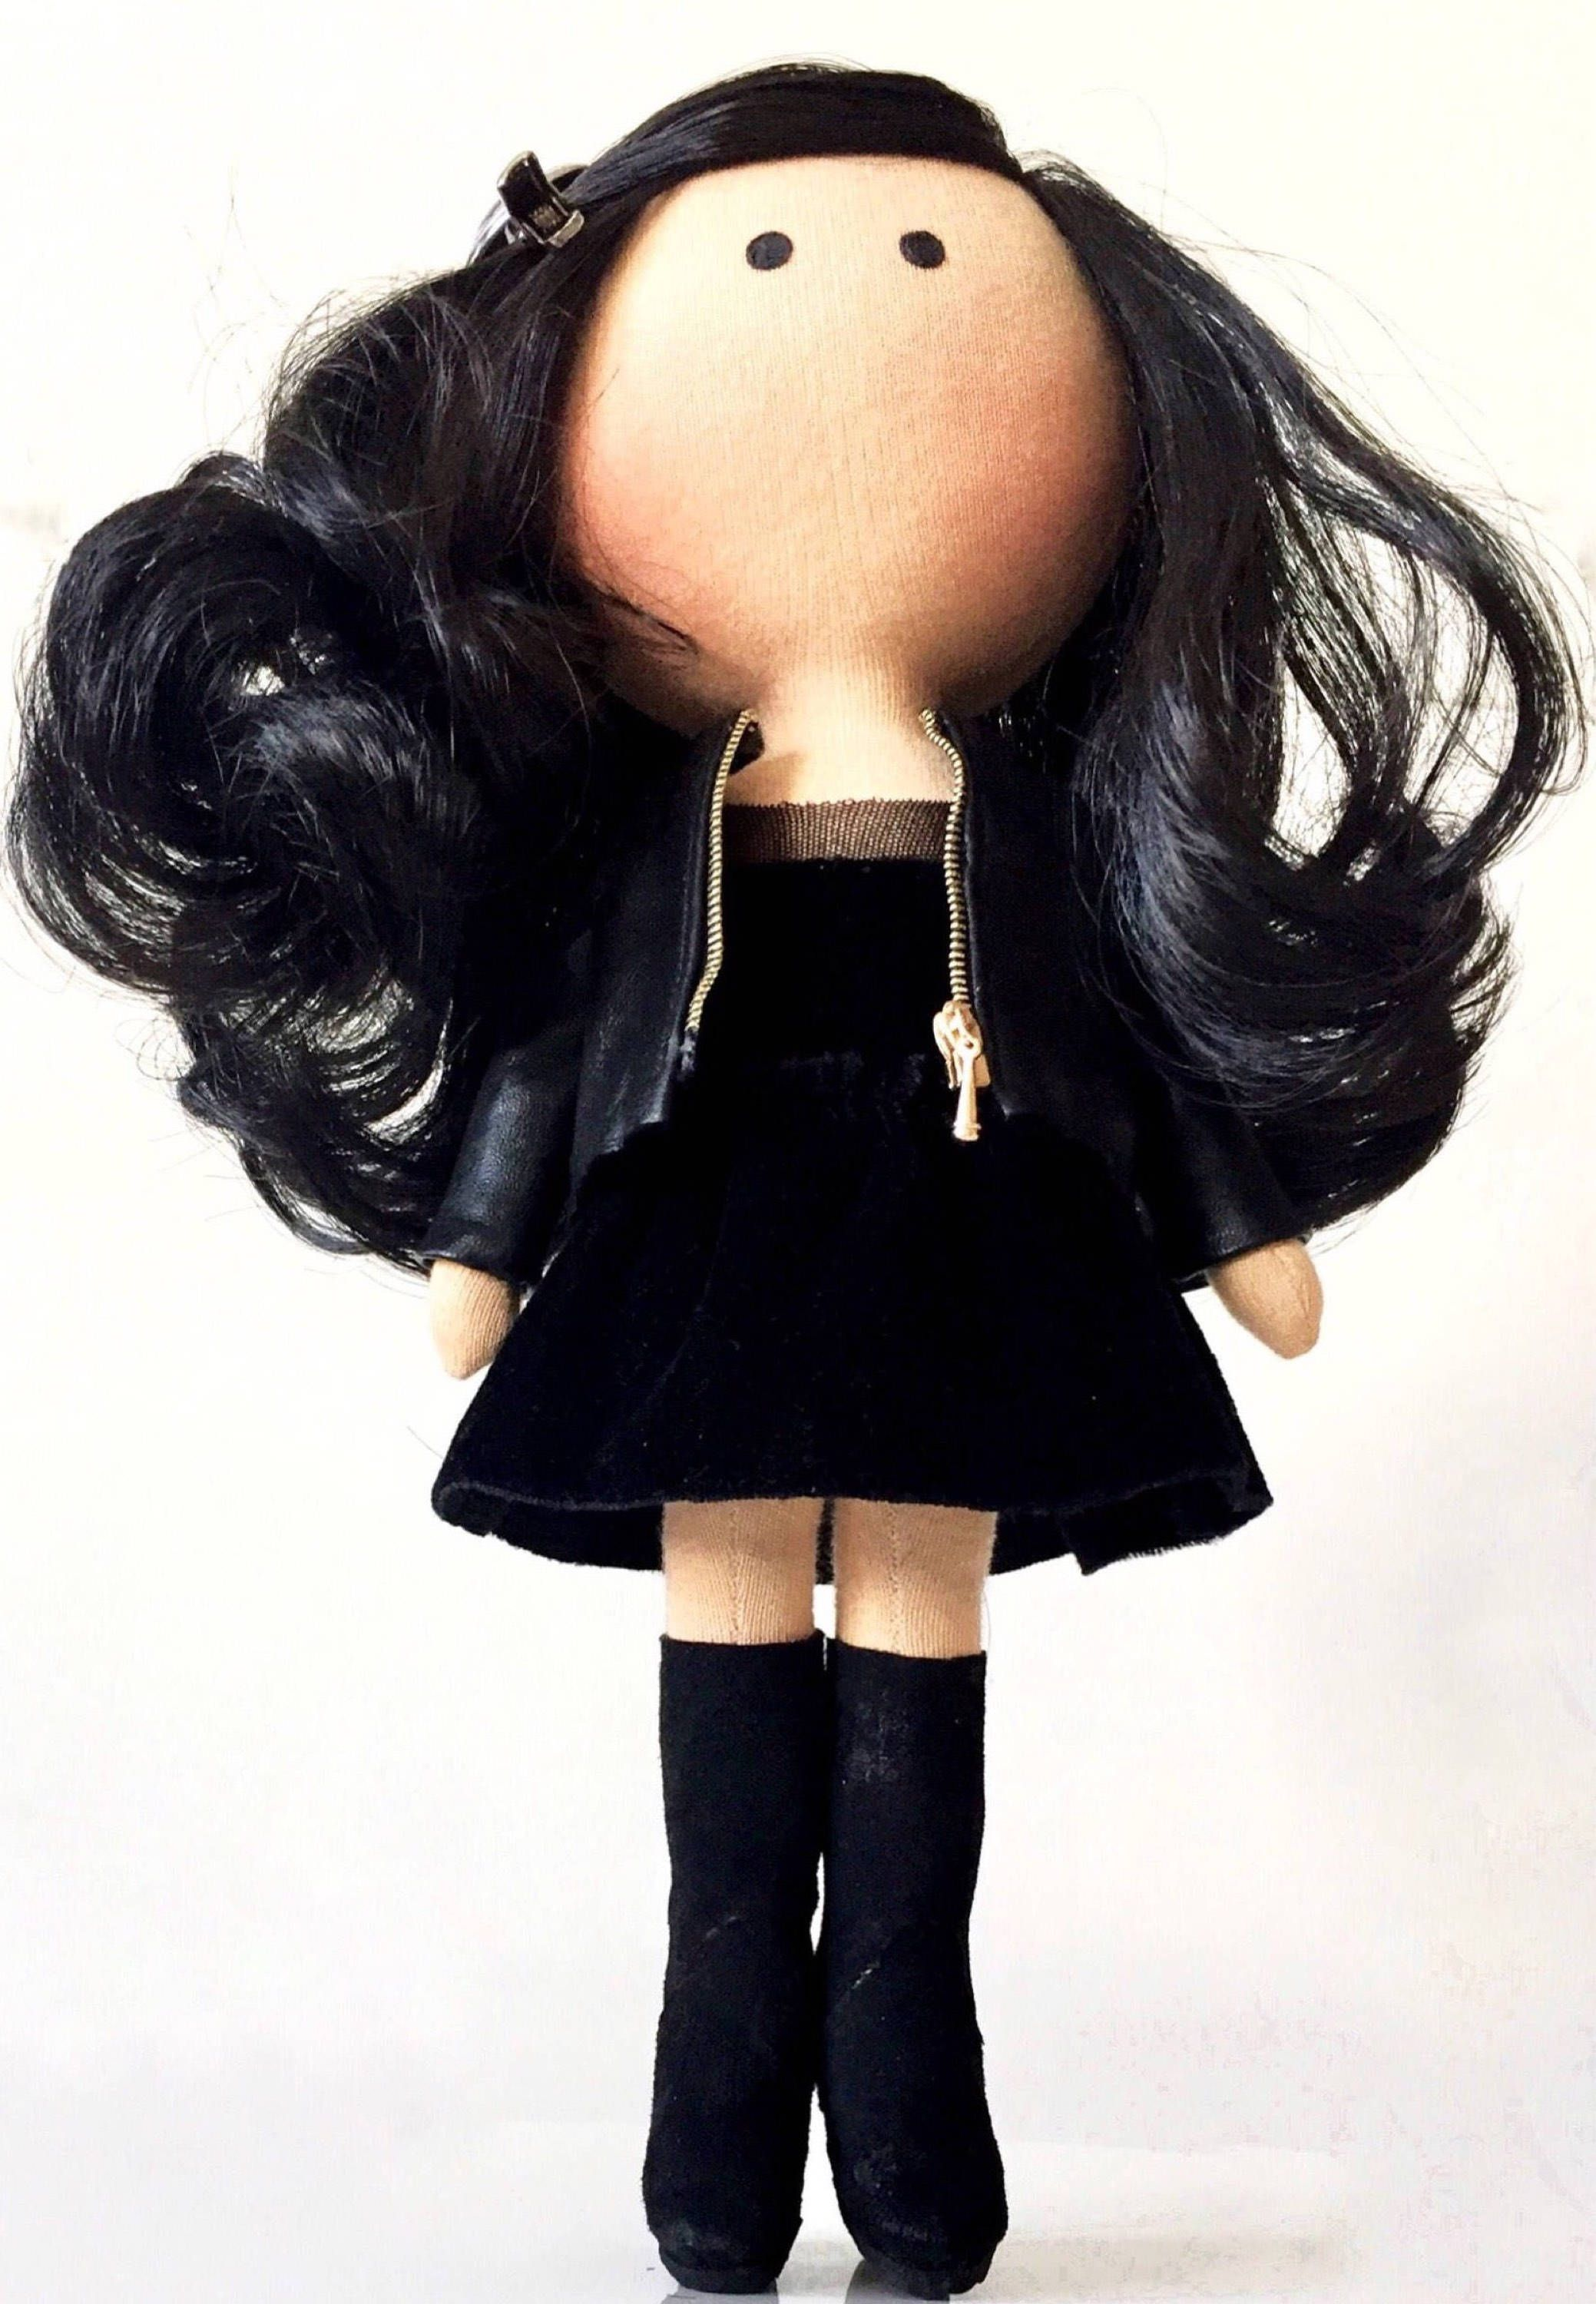 Goth girl Brunette handmade fabric doll Selfie portrait doll PDF pattern Soft textile Tilda doll Girlfriend gift Gift for her Art cloth doll #dollcare